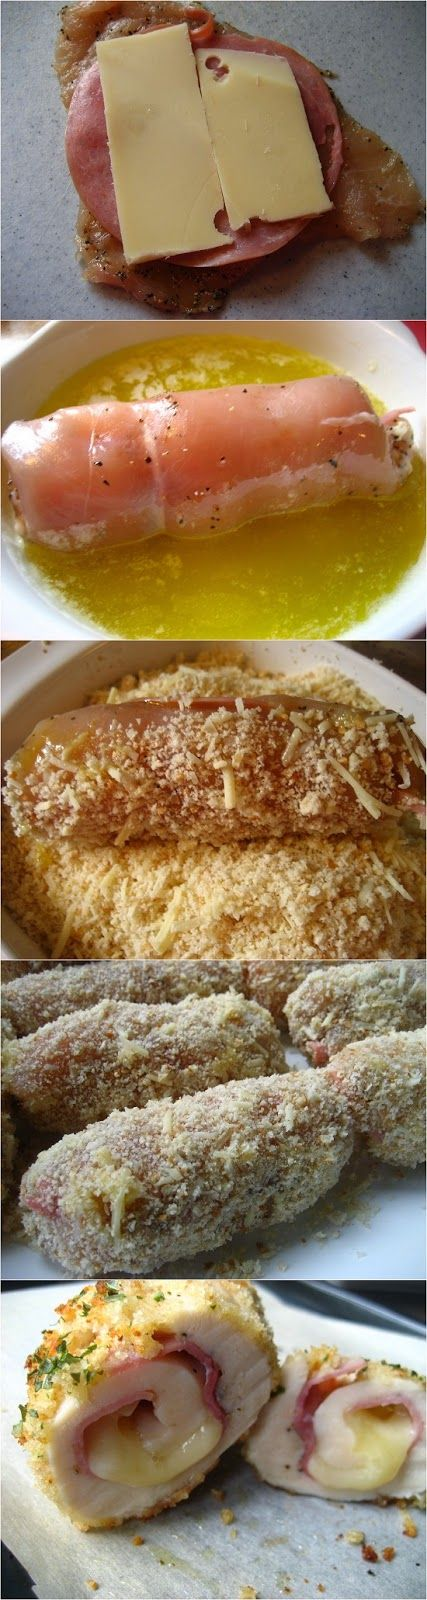 Easy Baked Chicken Cordon Bleu - knowkitchen